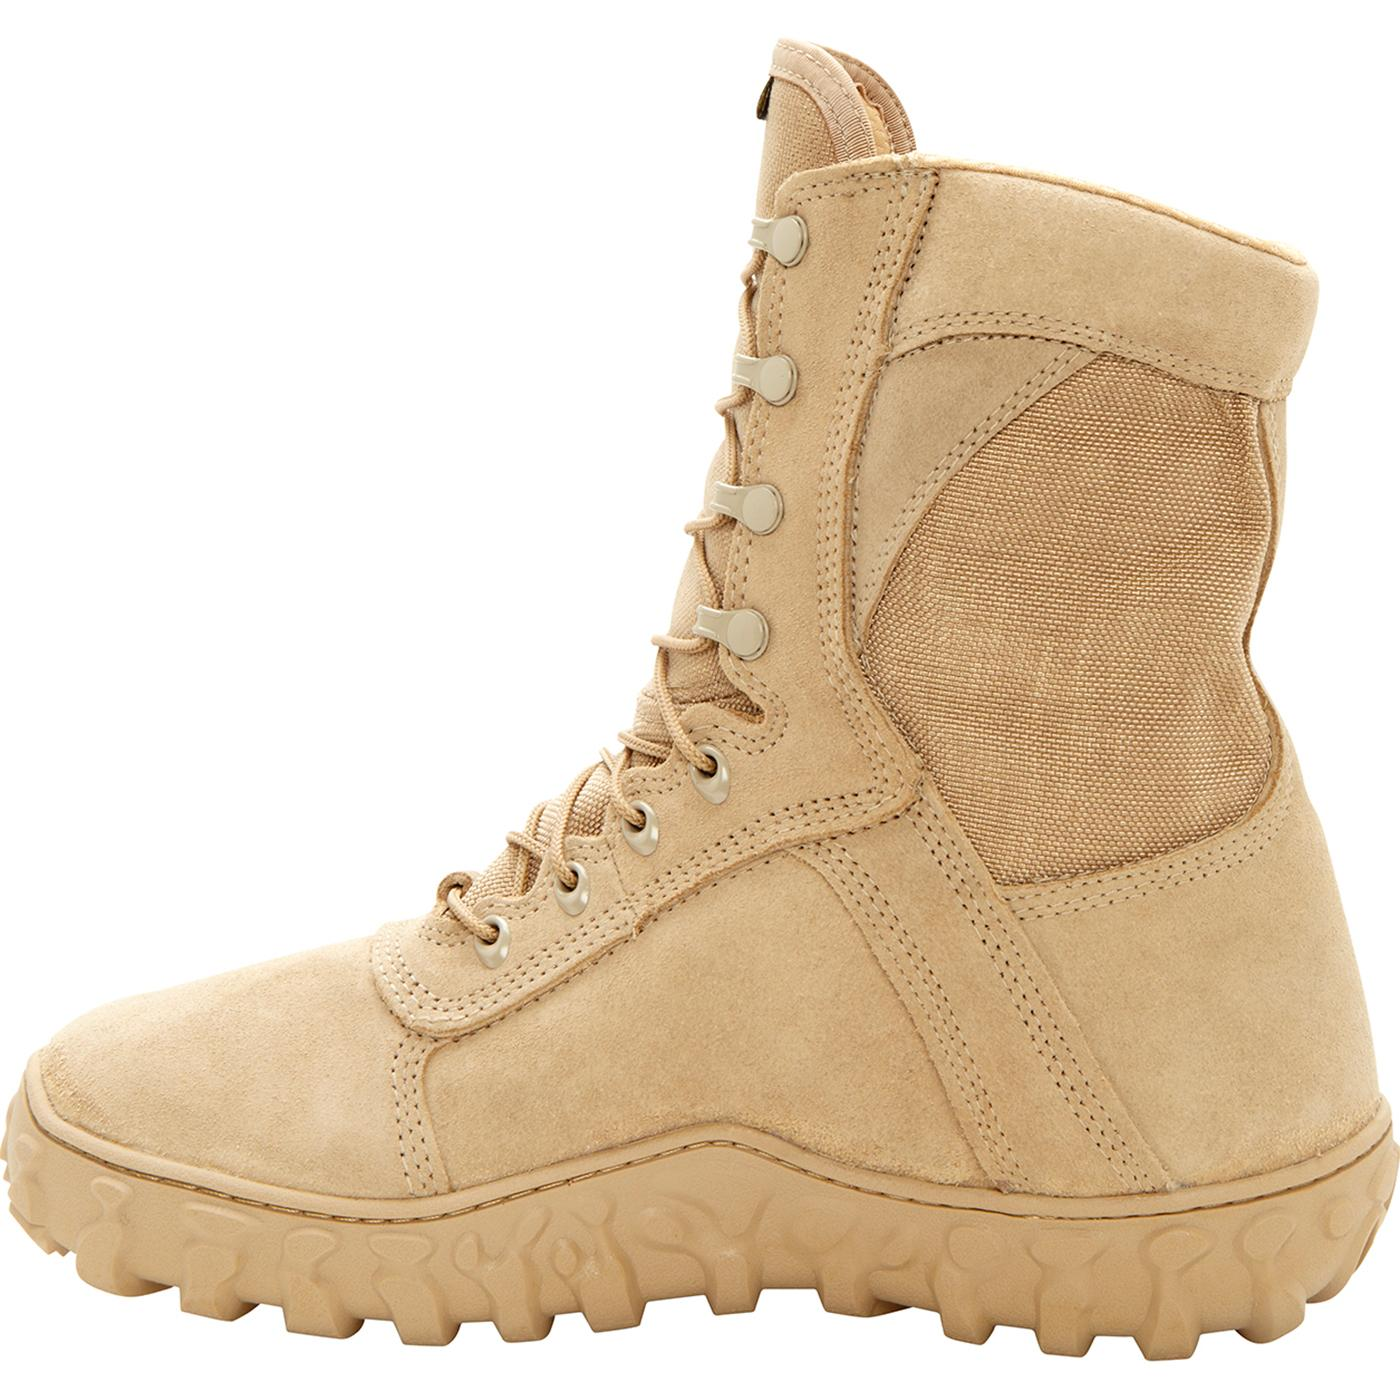 Rocky S2V GORE-TEX® Waterproof 400G Insulated Tactical Military Boot bccaddfd735